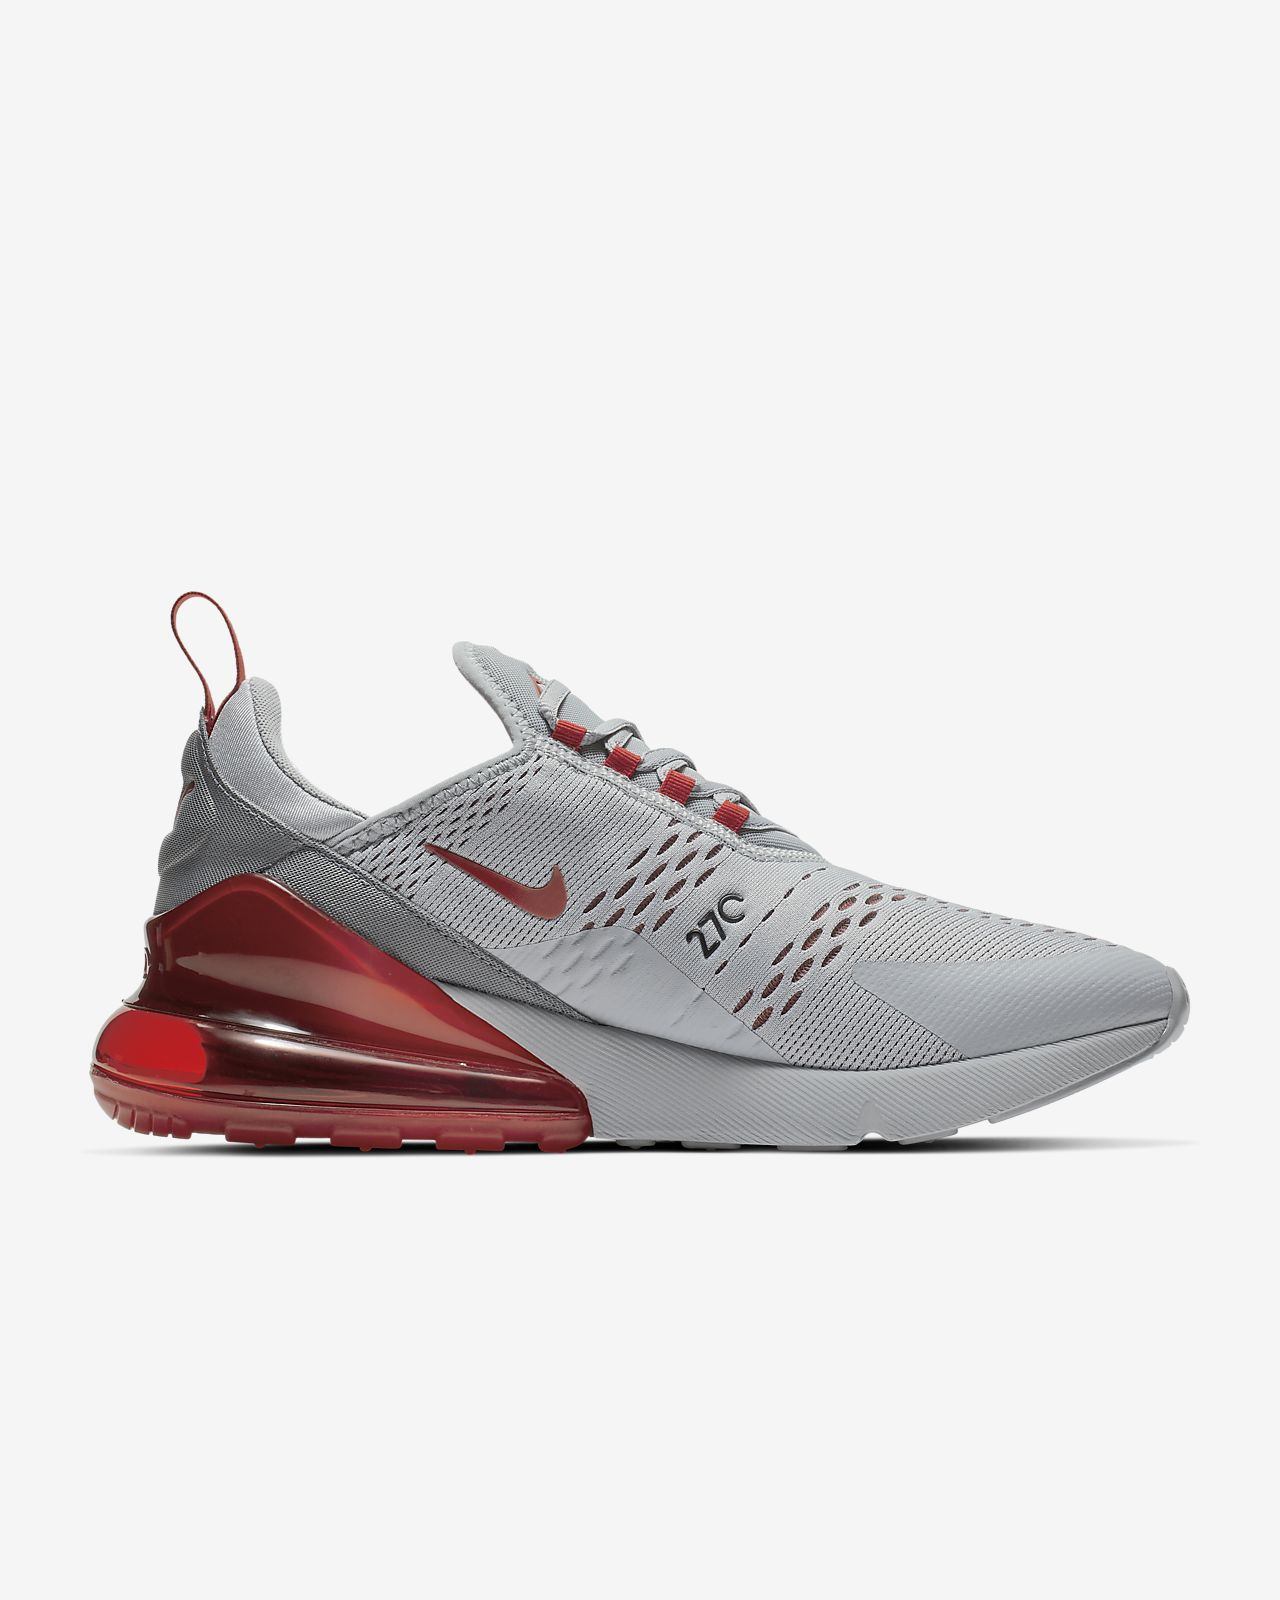 lowest price 8241d 76ff0 ... Nike Air Max 270 Men s Shoe